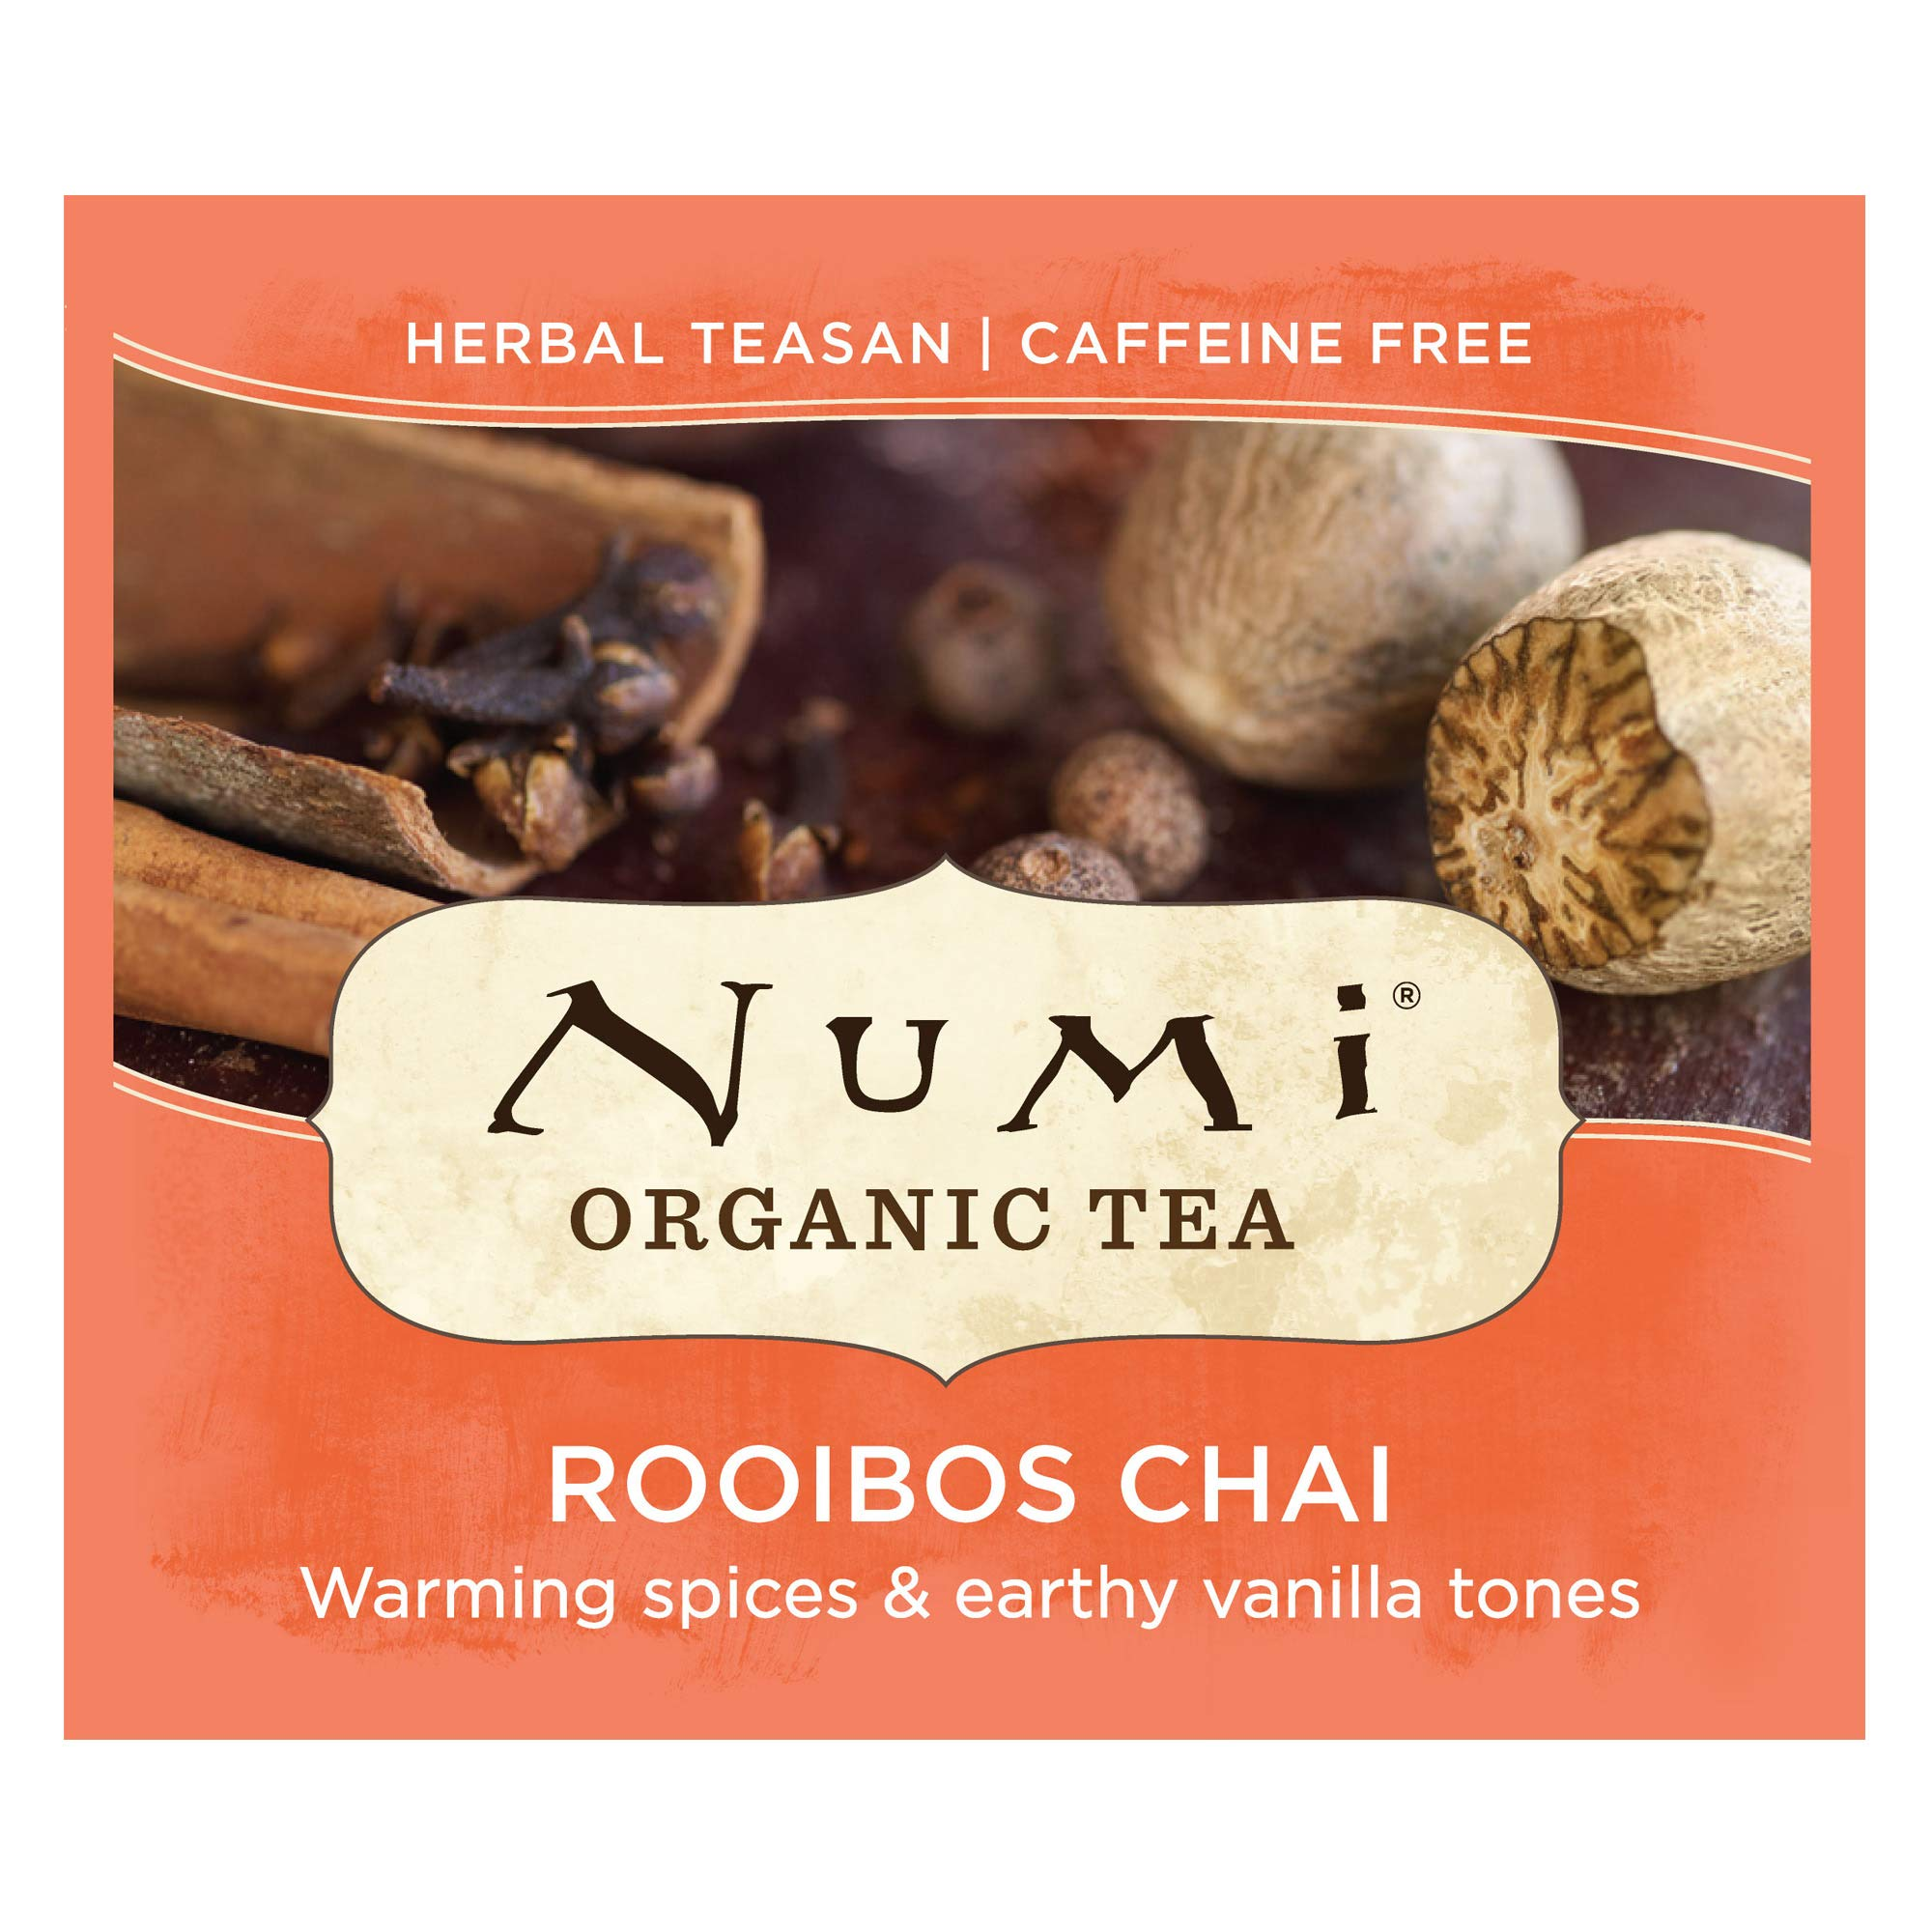 Numi Organic Tea Rooibos Chai, 100 Count Box of Tea Bags, Herbal Teasan, Caffeine-Free (Packaging May Vary) by Numi